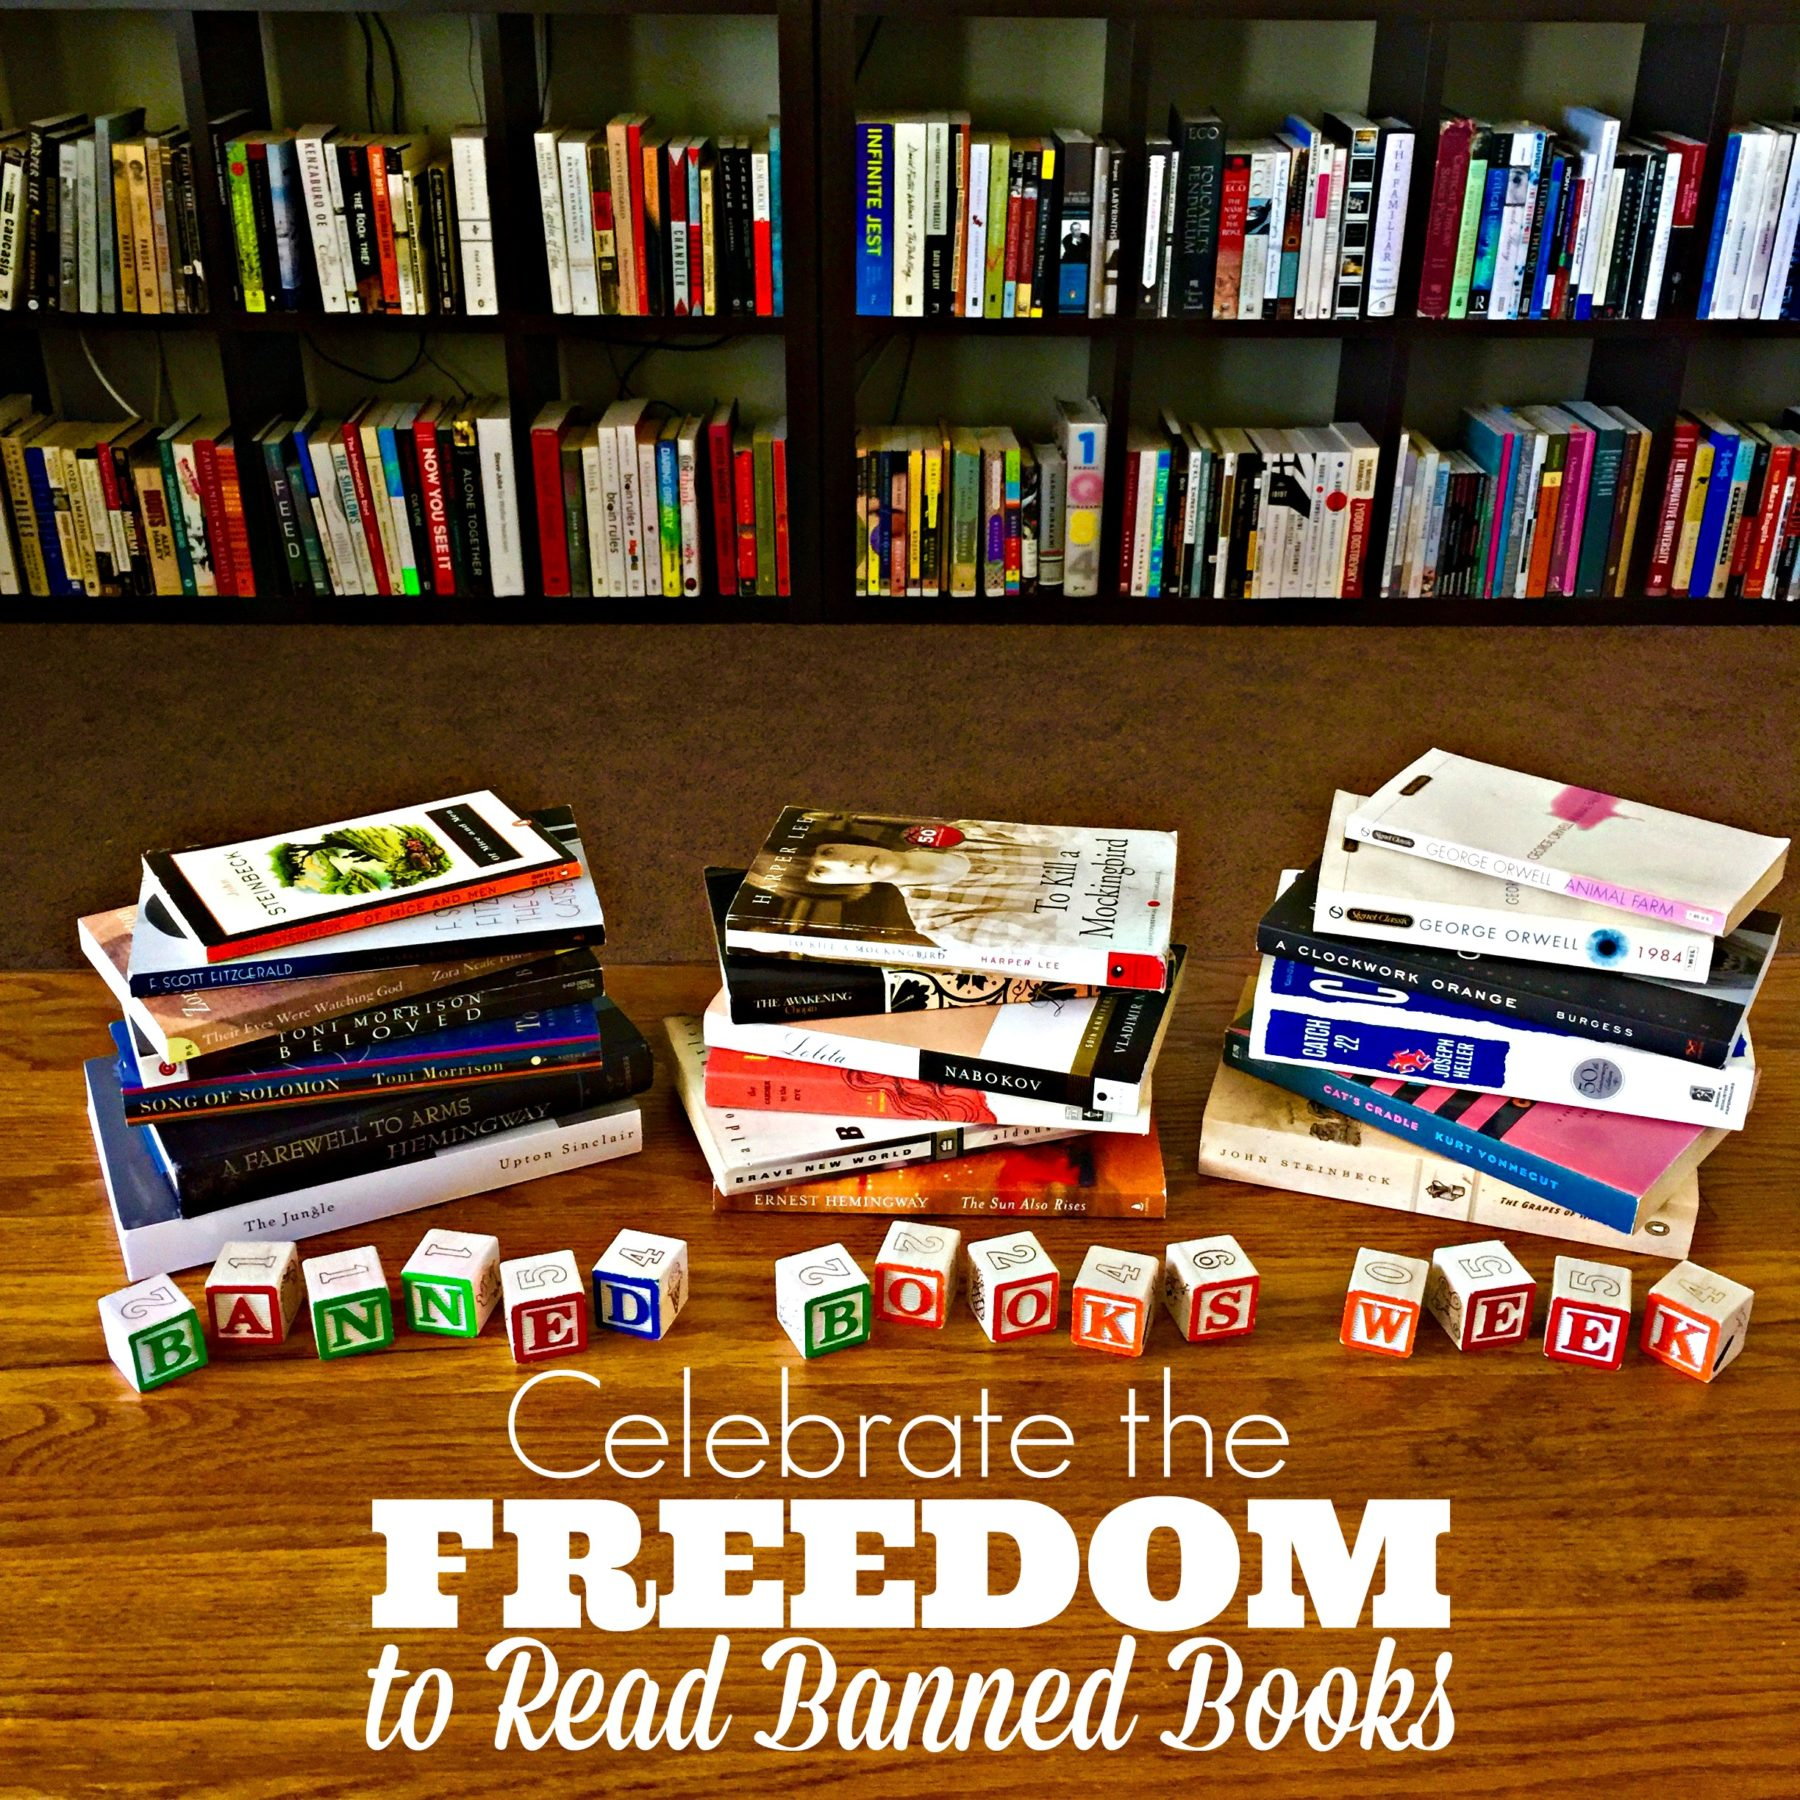 Celebrate the Freedom to Read Banned Books